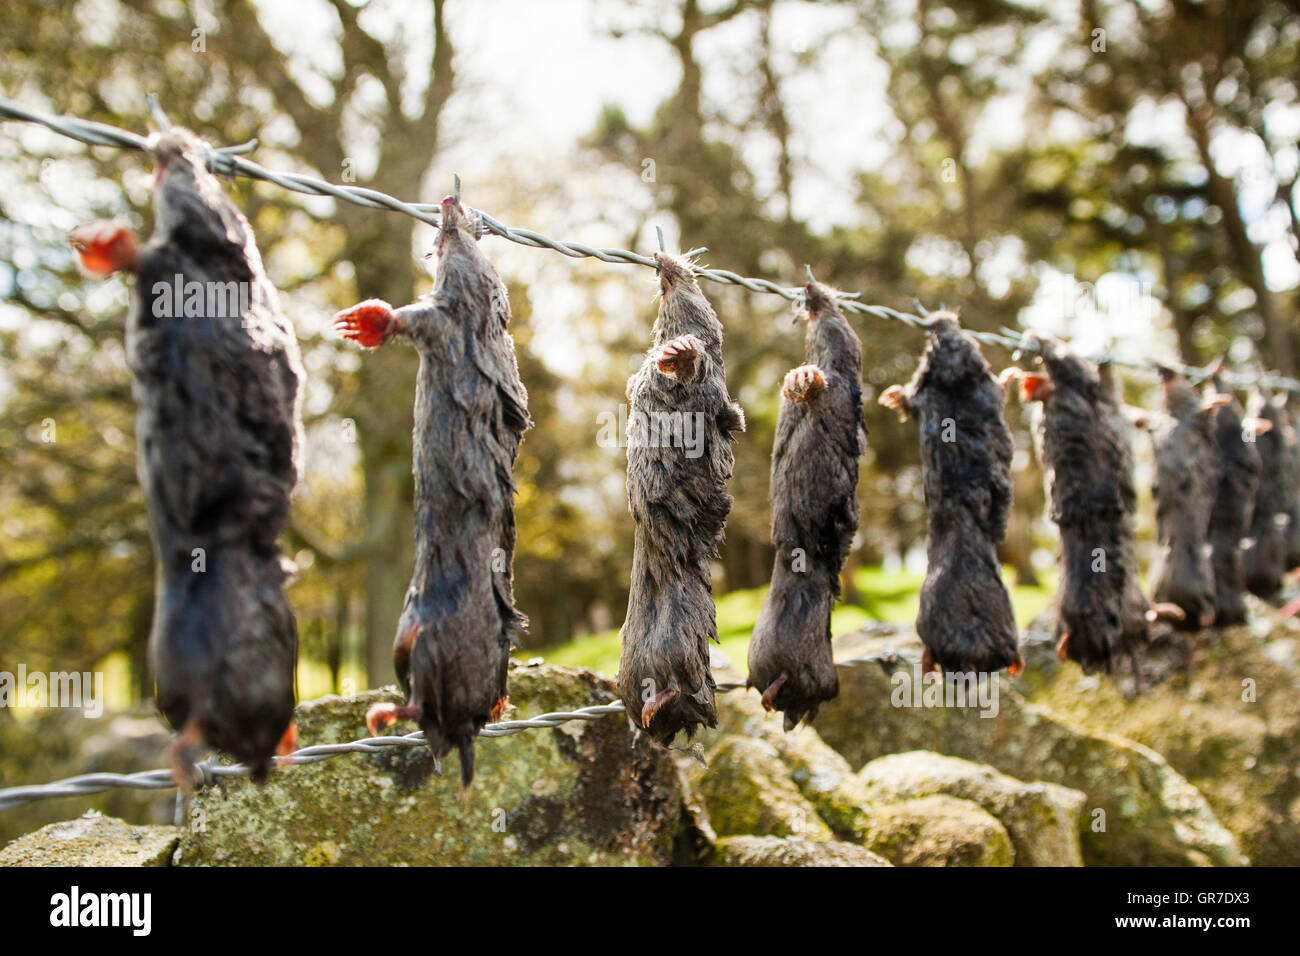 Dead European Moles (Talpa europaea) hung up on barbed wire fence, a so called murder rail, North Pennines, England, - Stock Image